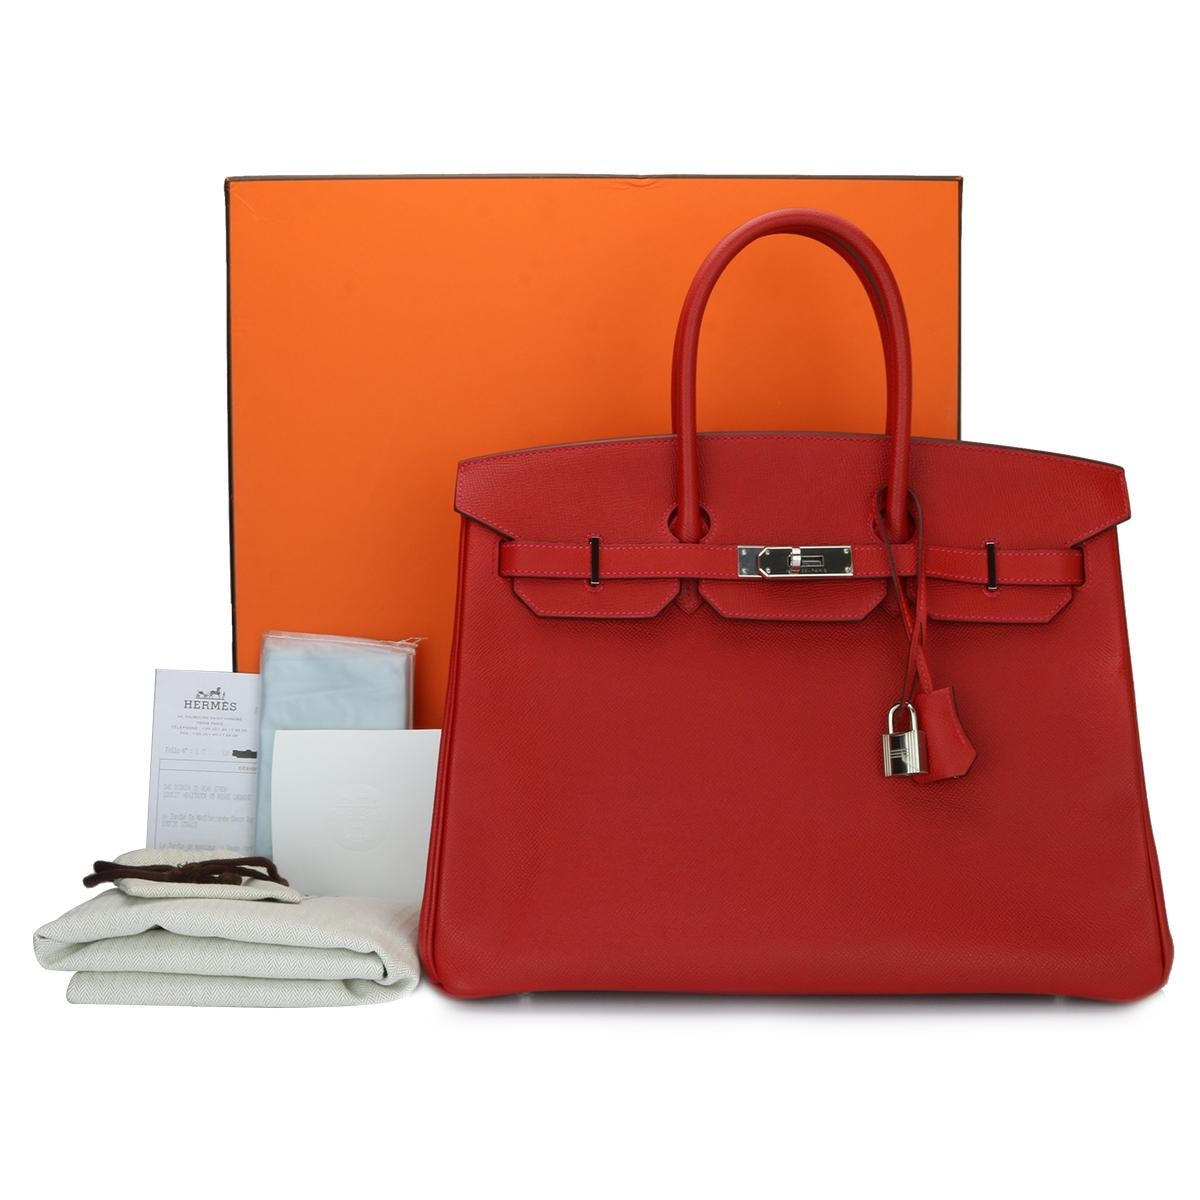 baab2cb5763 ... coupon code for authentic hermès birkin 35cm q5 rouge casaque epsom  leather with palladium hardware stamp